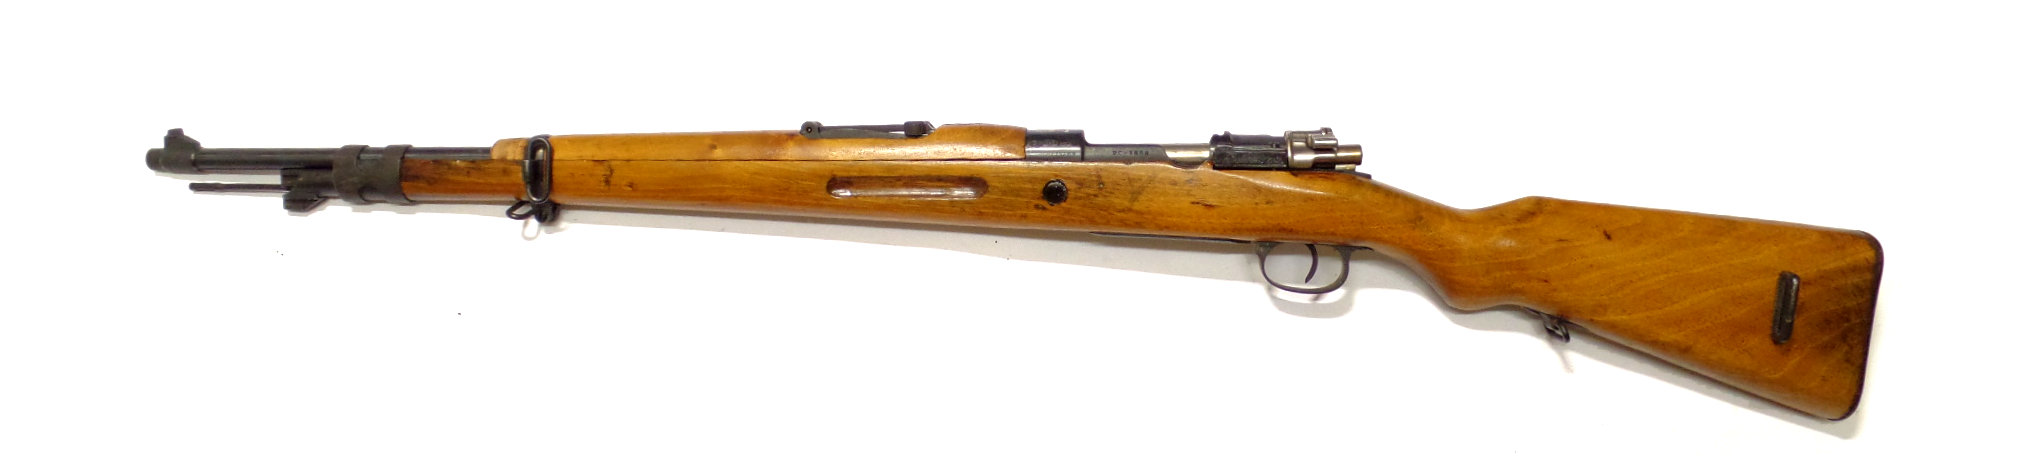 LA CORUNA 98K calibre 8x57IS